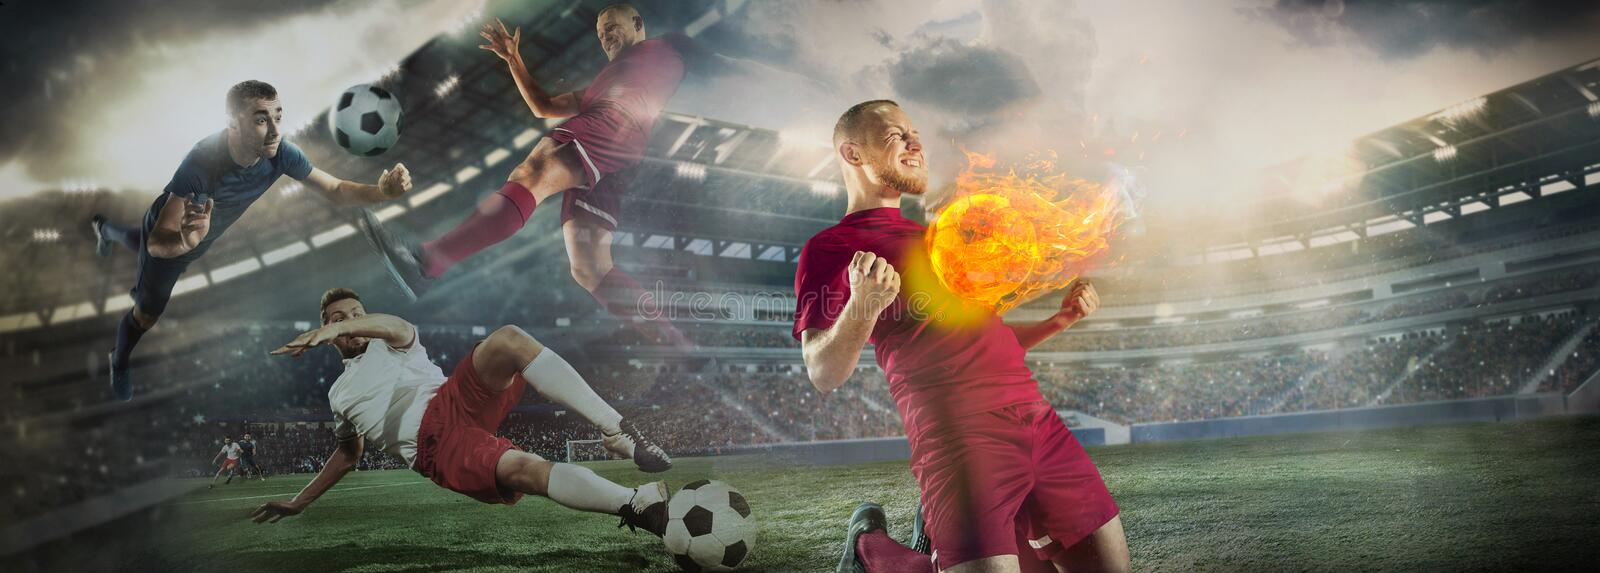 Close up soccer ball in fire and football players. Creative collage royalty free stock photos